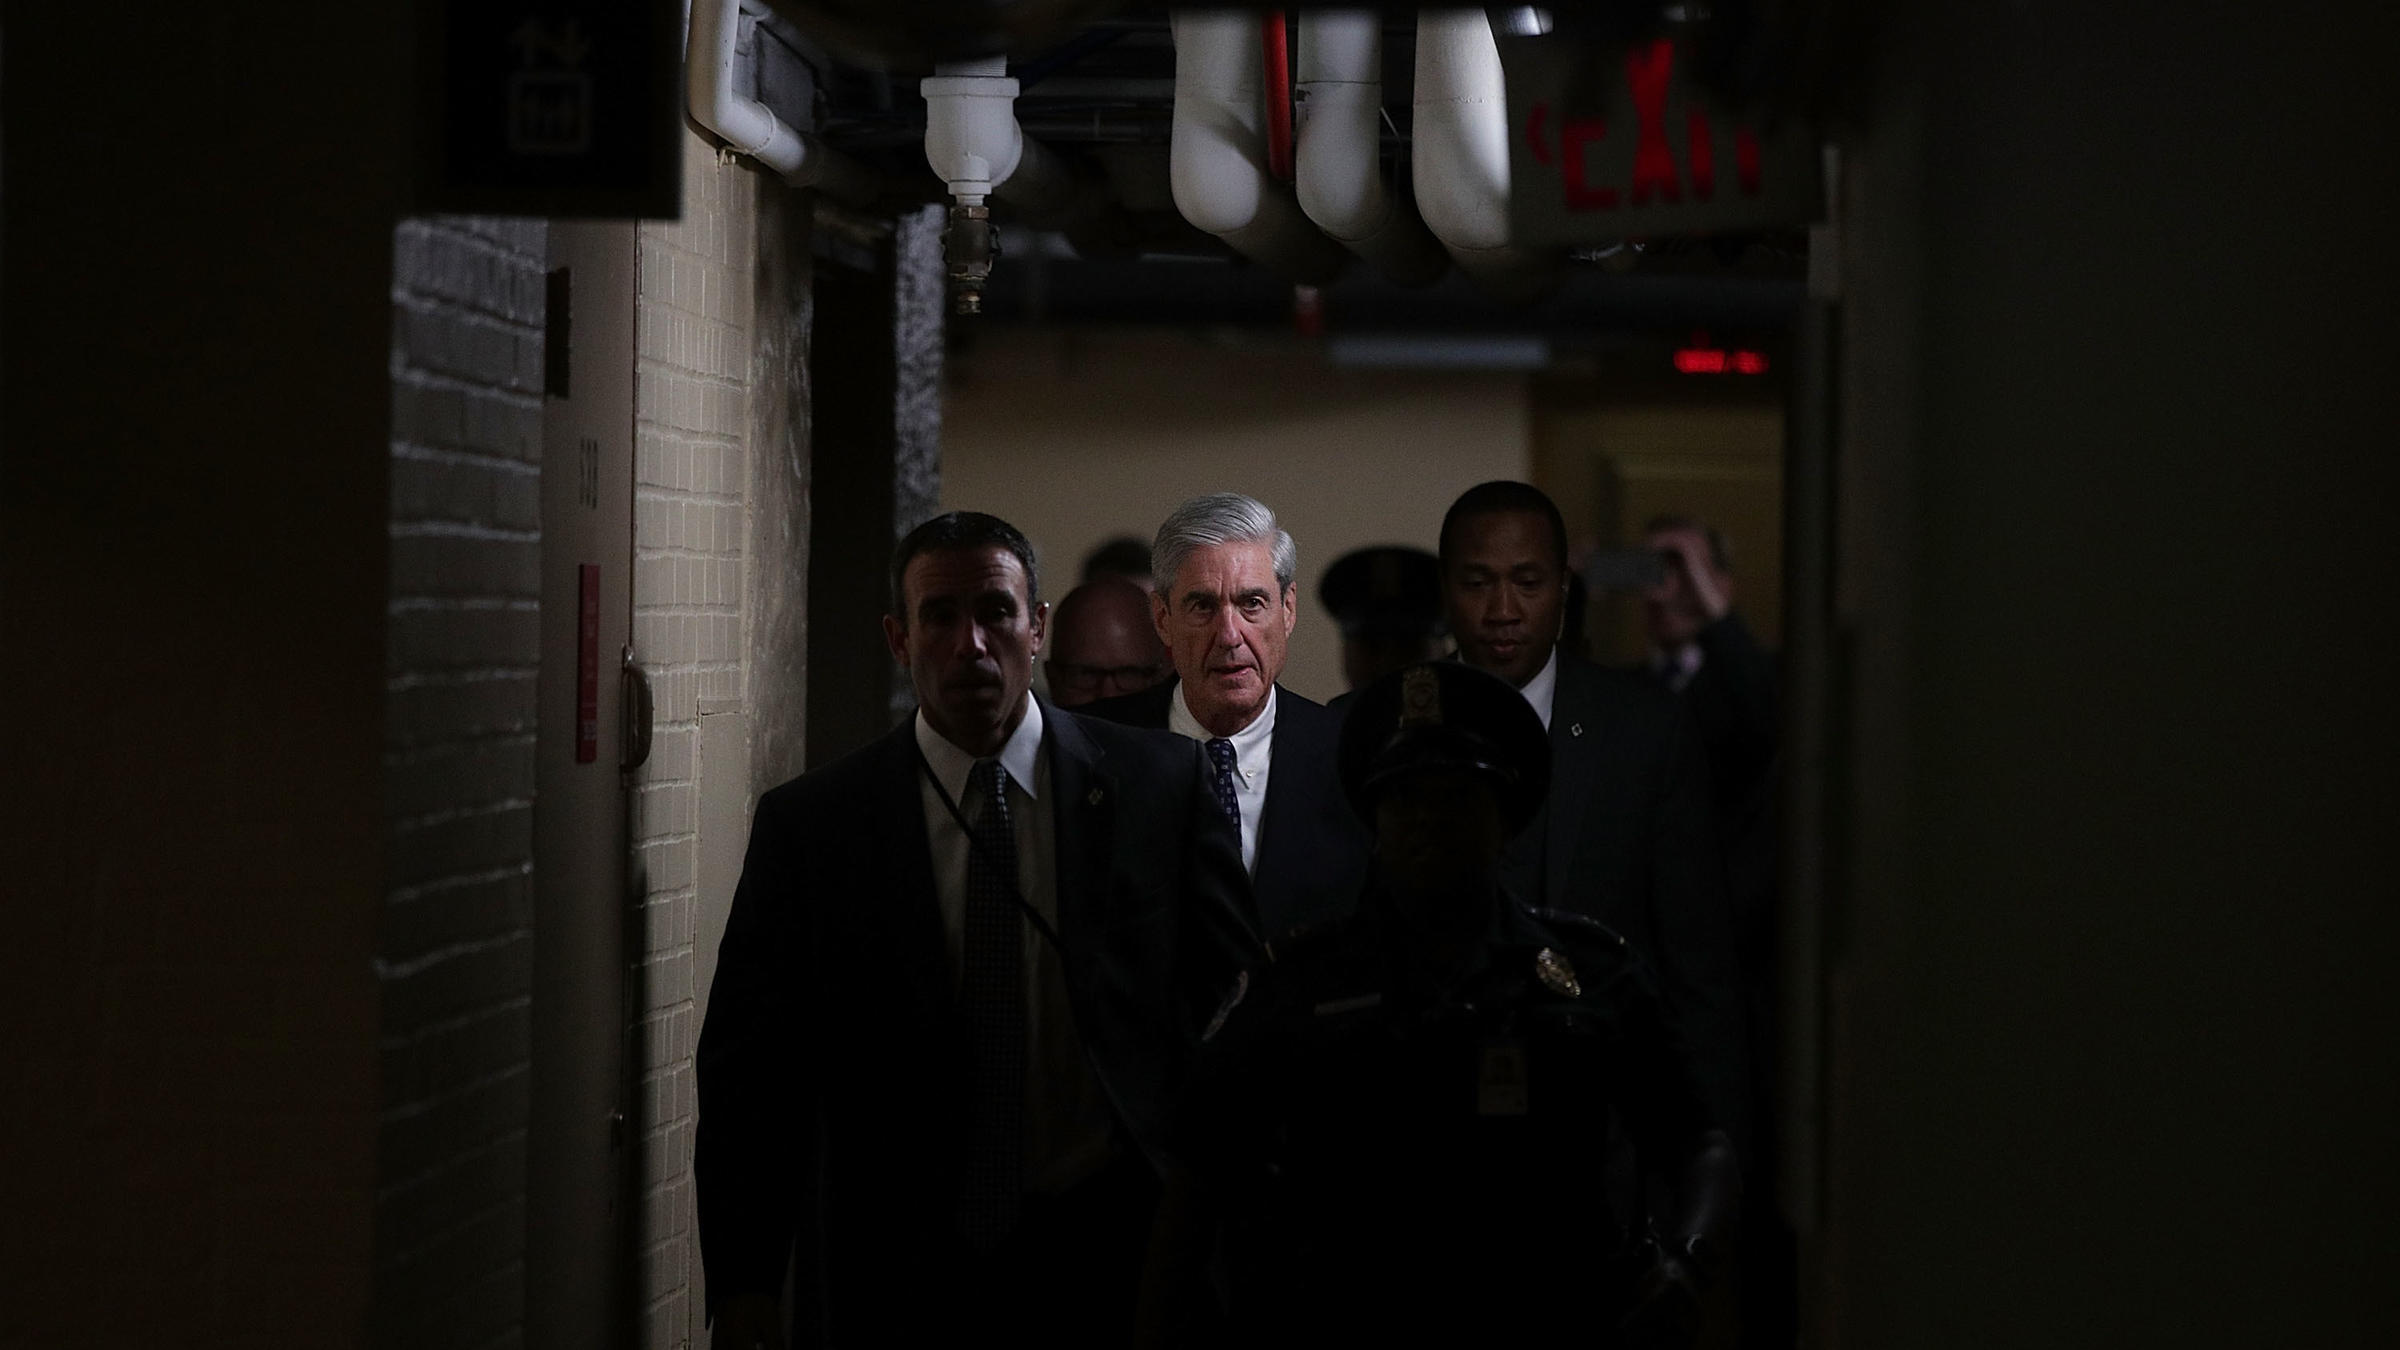 Robert Mueller unlawfully obtained thousands of emails: Trump transition officials